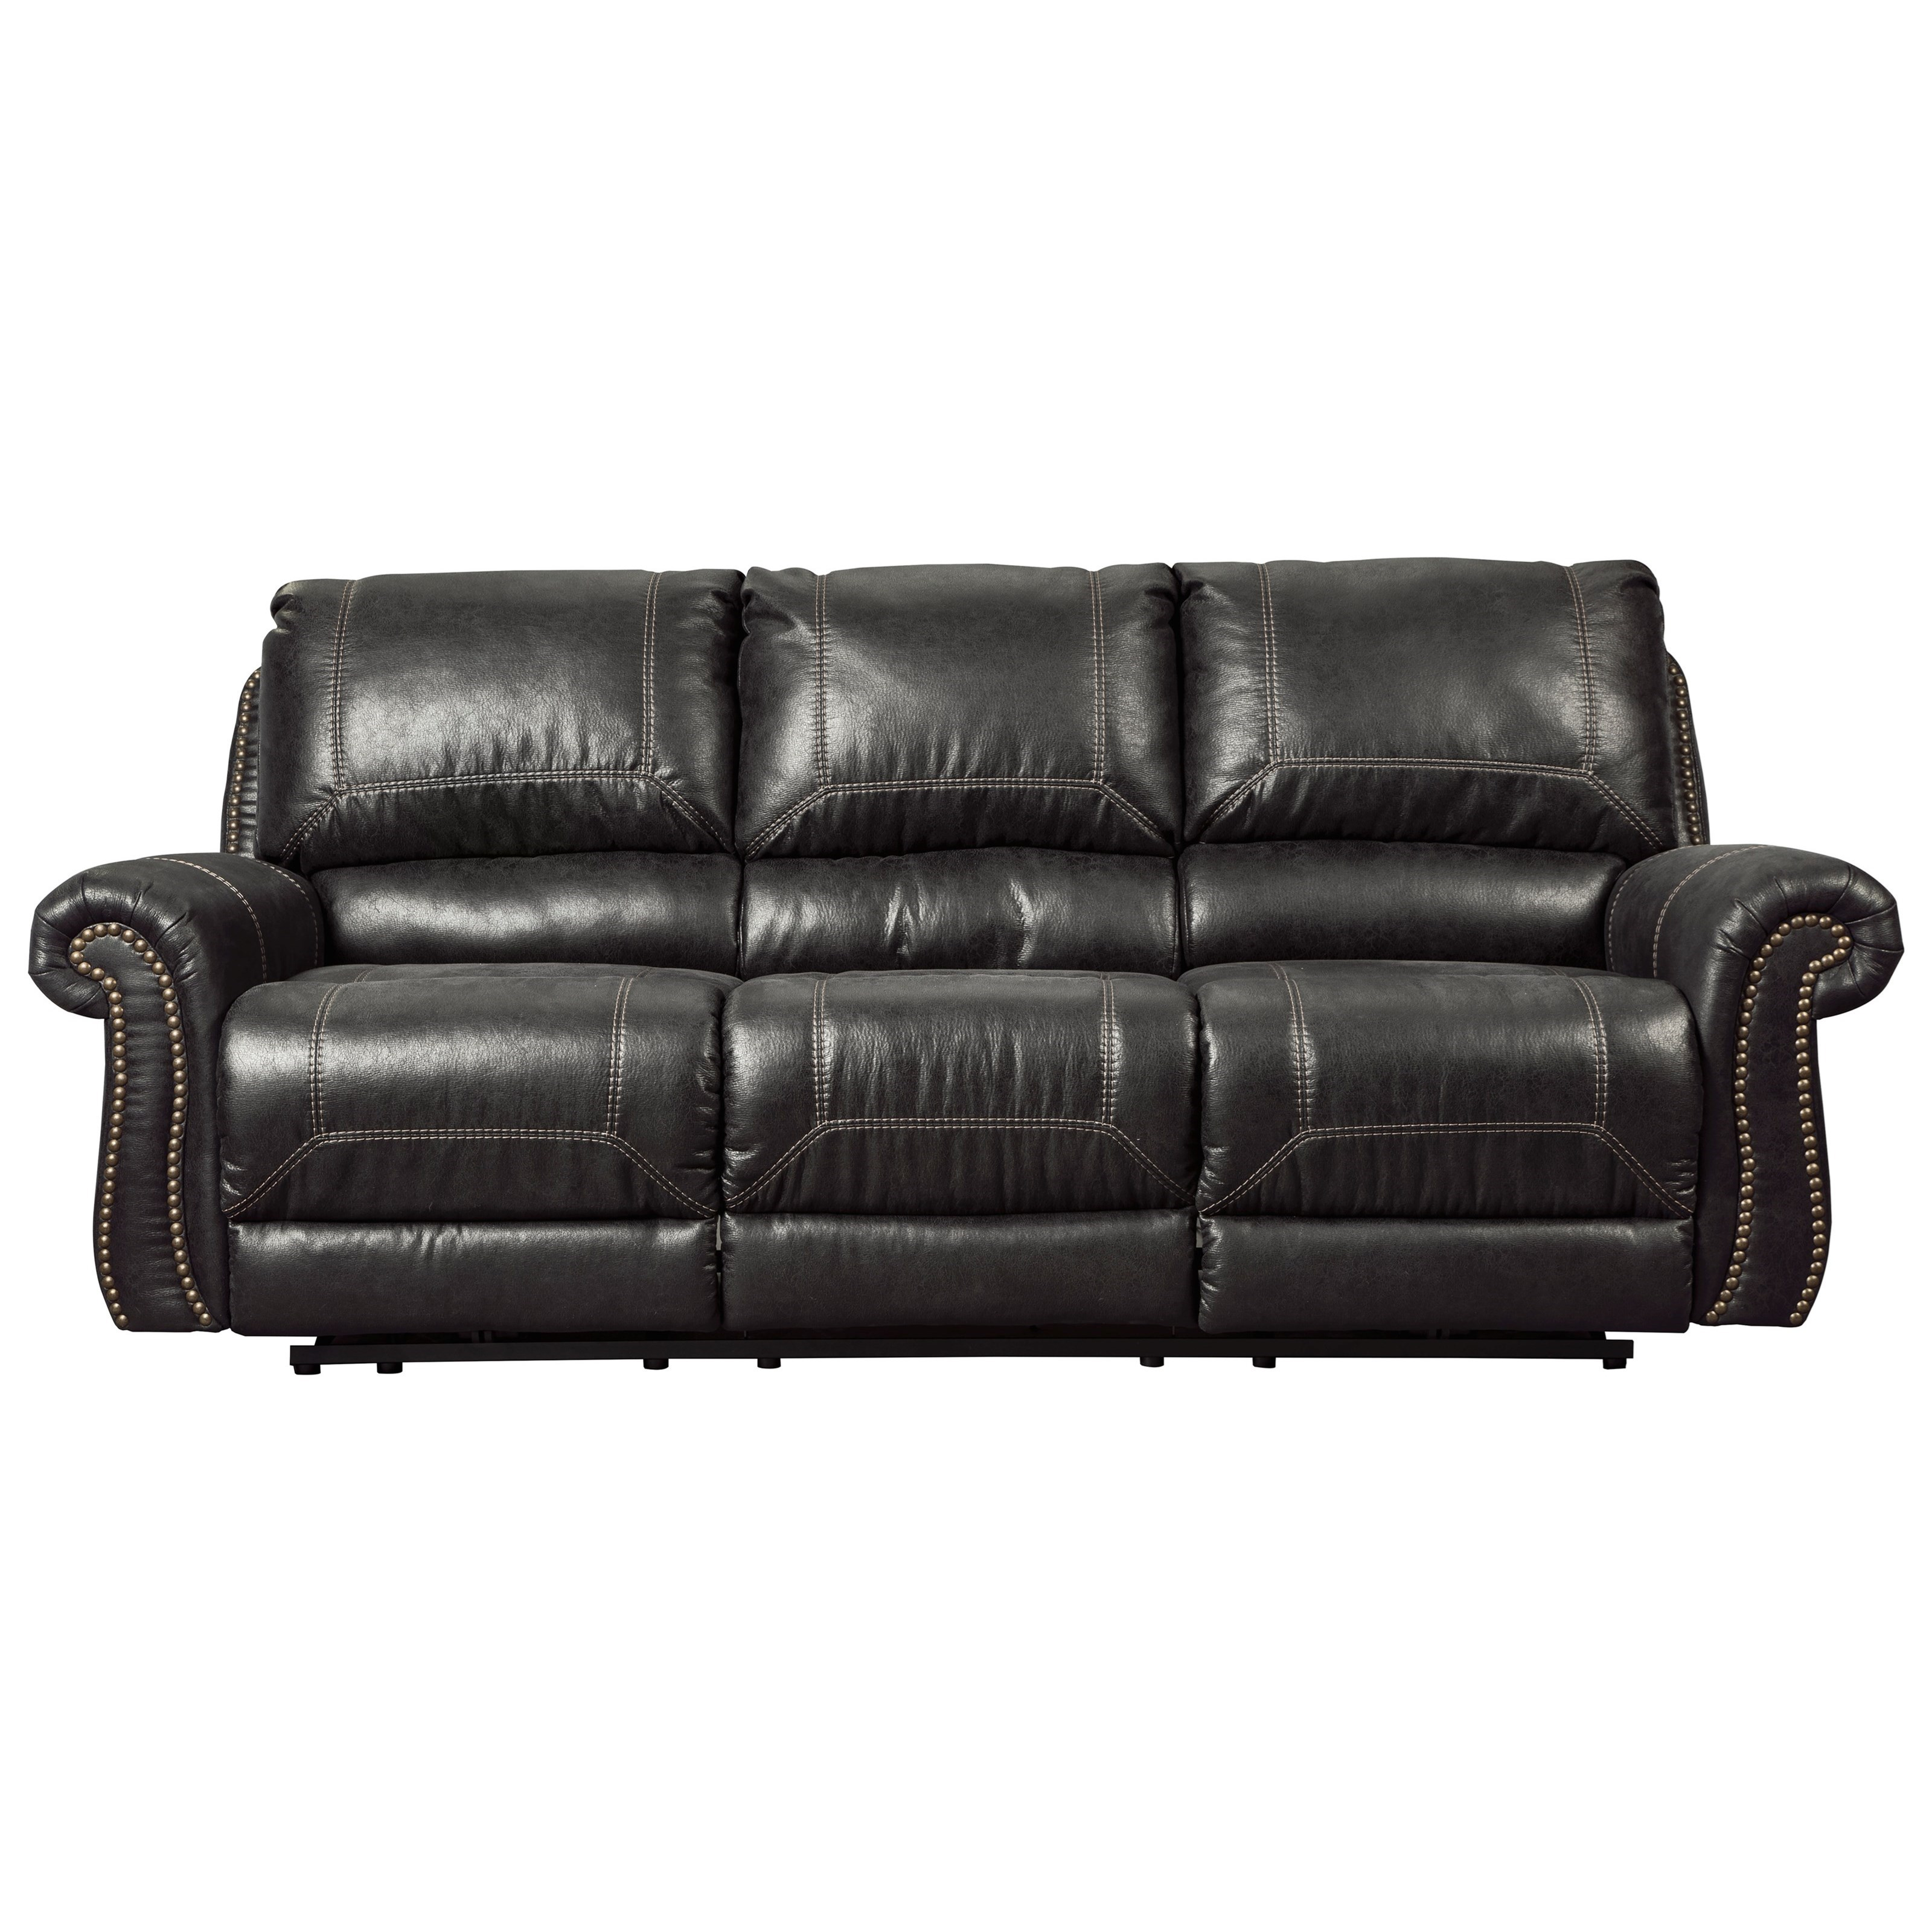 Signature Design by Ashley Milhaven Reclining Sofa - Item Number: 6330388